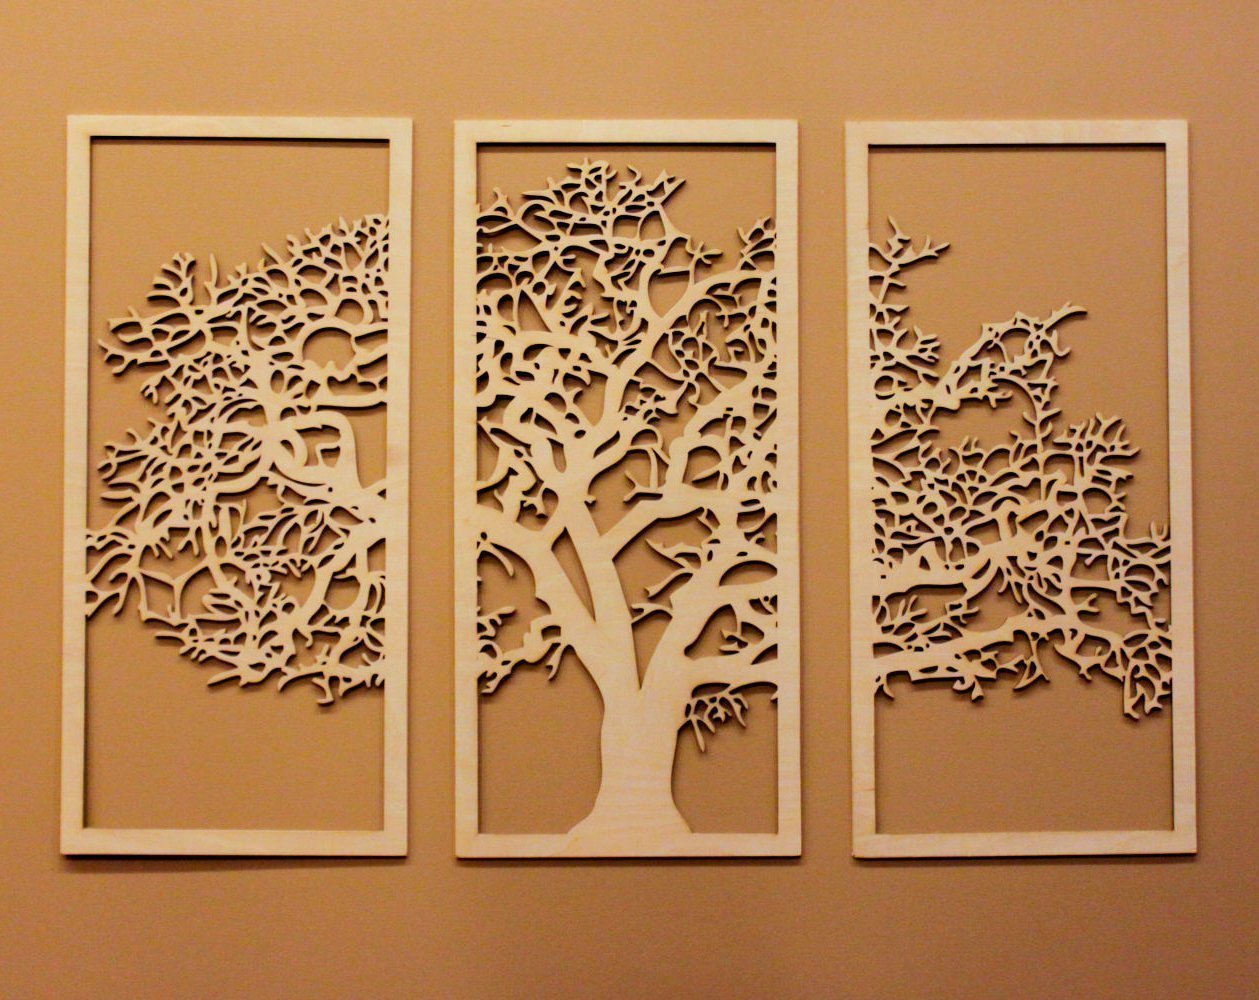 Tree of Life 3D Maple - 3 Panel Wood Wall Art - Beautiful Living Room Decor - 642415474566 | eBay  sc 1 st  eBay & Tree of Life 3D Maple - 3 Panel Wood Wall Art - Beautiful Living ...